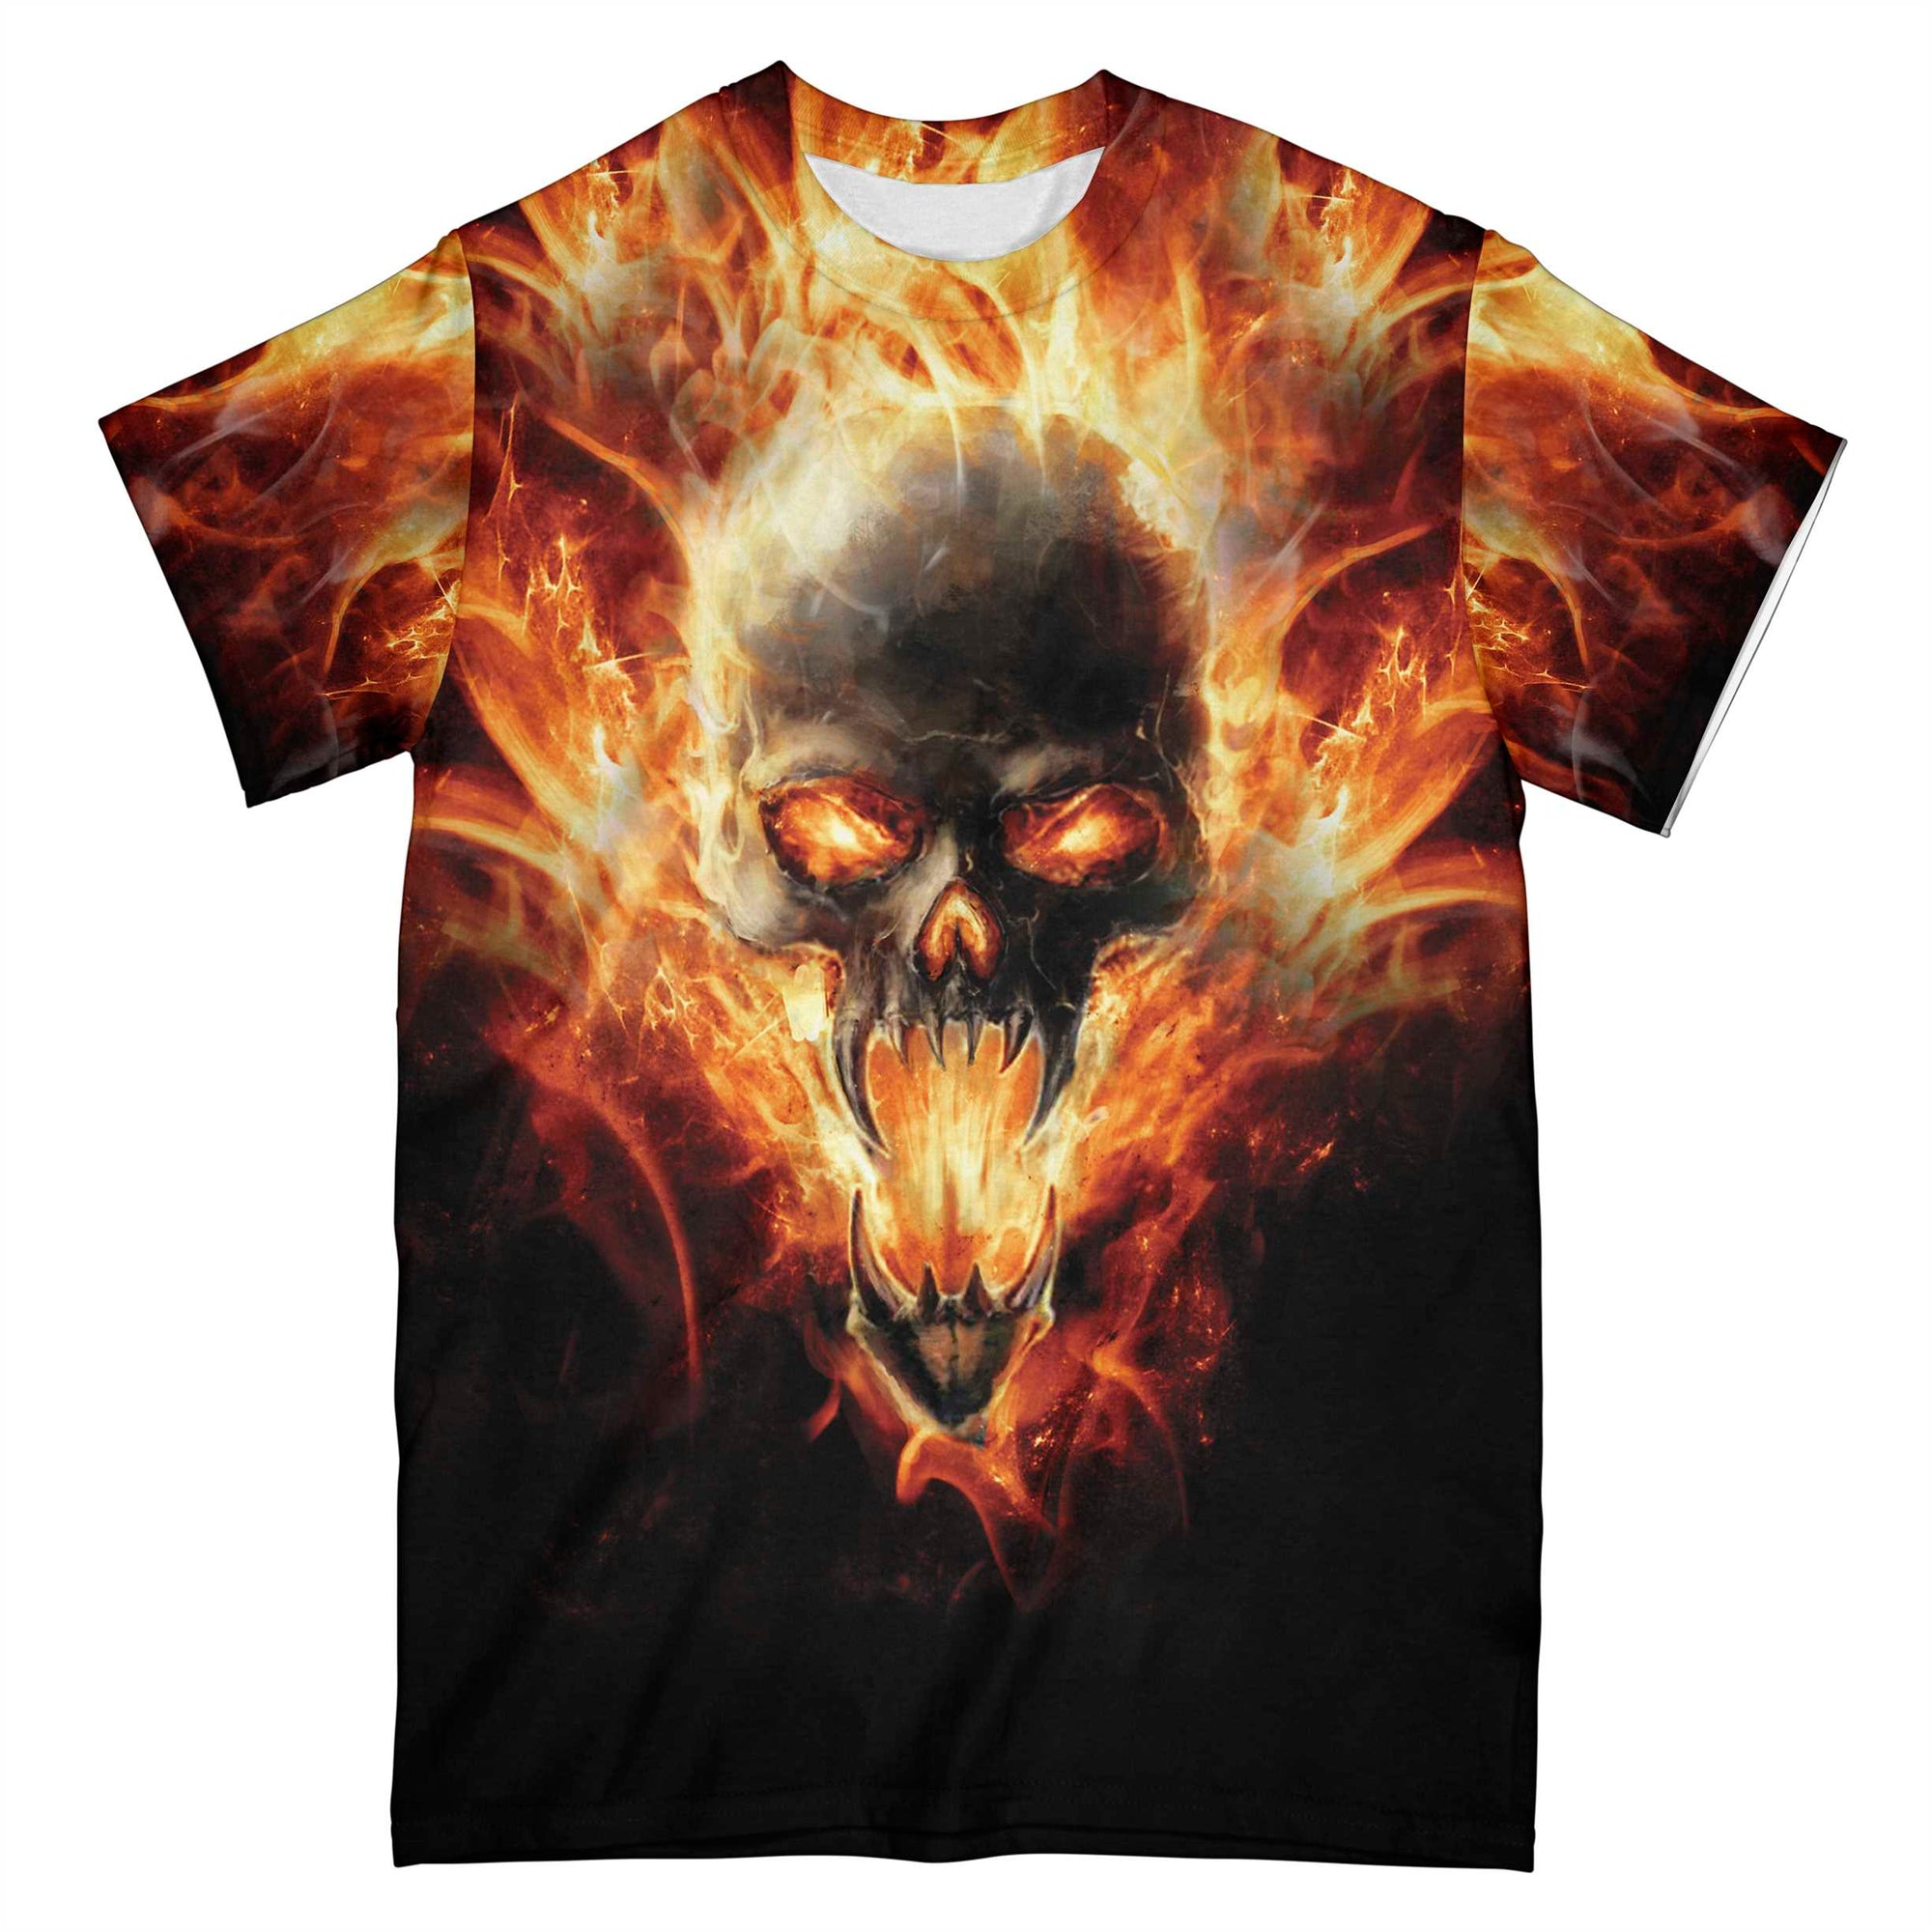 Skull Hell Fire Grumpy Old Man EZ05 0510 All Over T-Shirt